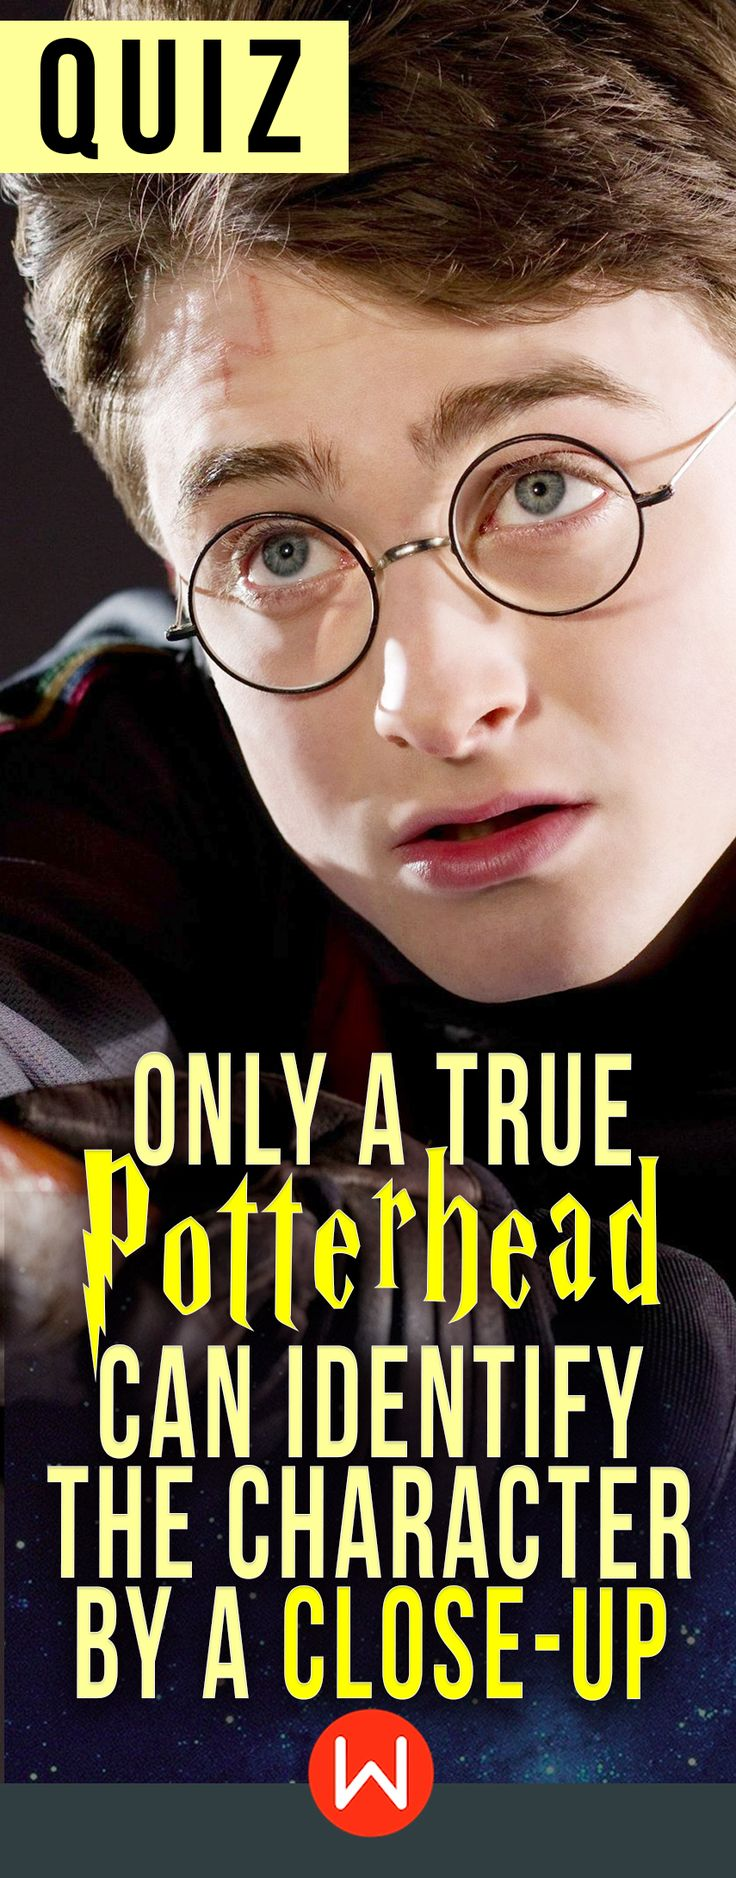 Quiz: ONLY a true Potterhead can identify the character by a close-up image! Can you? HP quiz, Harry Potter trivia test, JK Rowling, buzzfeed quizzes, playbuzz quiz, wizarding world quiz, hogwarts. Keep your friends close...and your Harry Potter characters closer!